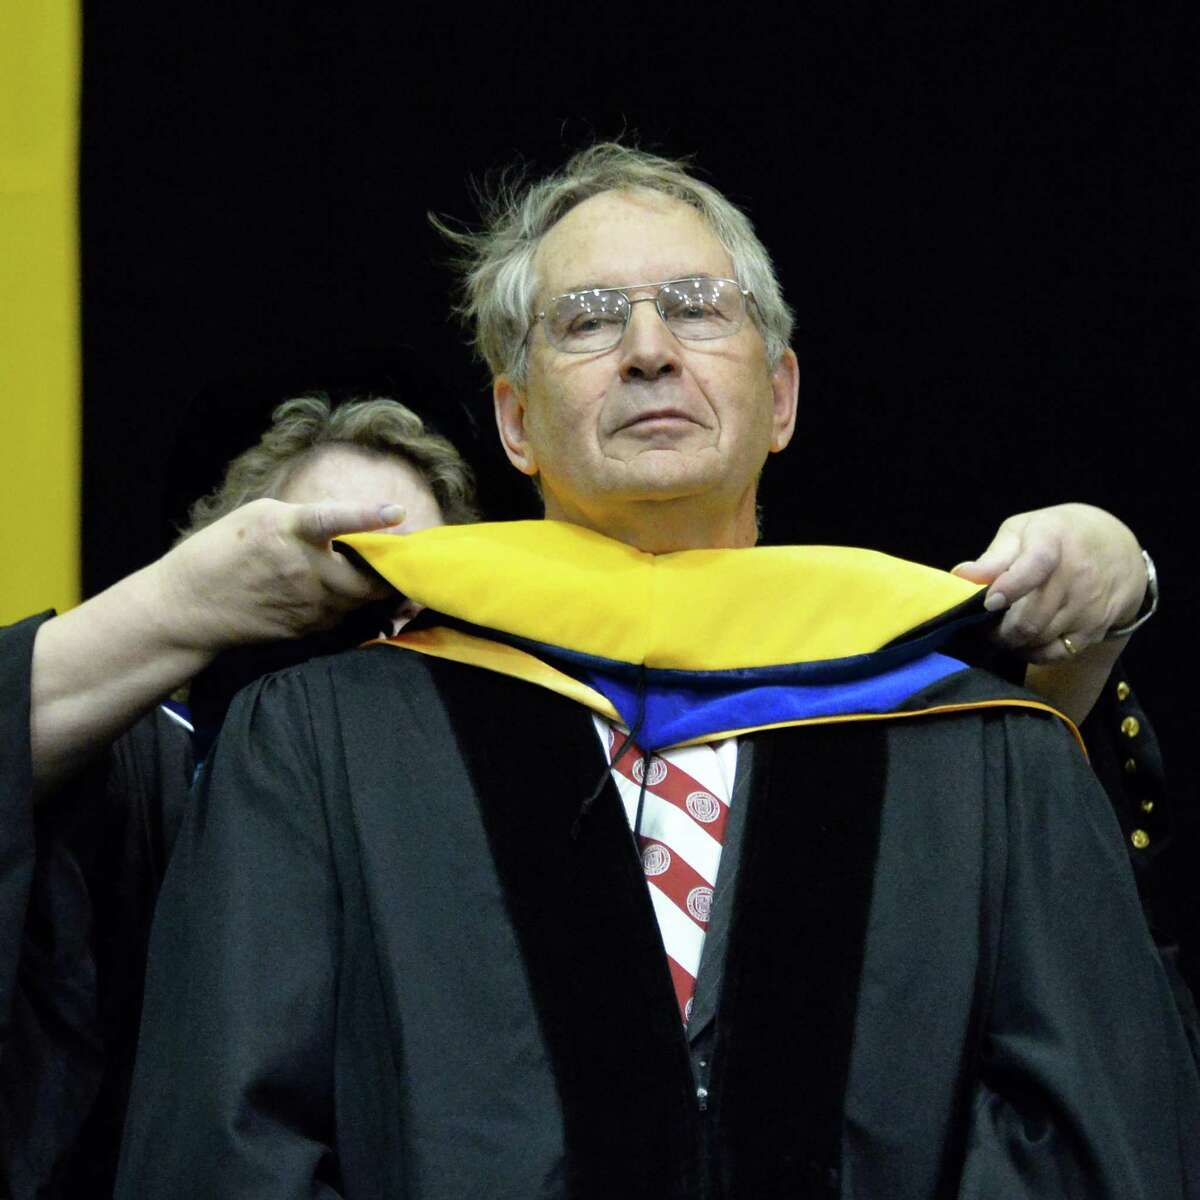 Co-founder of Advion, John D. Henion recieves an honoring degree during UAlbany Graduate college commencement ceremonies in Albany, NY Saturday May 18, 2013. (John Carl D'Annibale / Times Union)